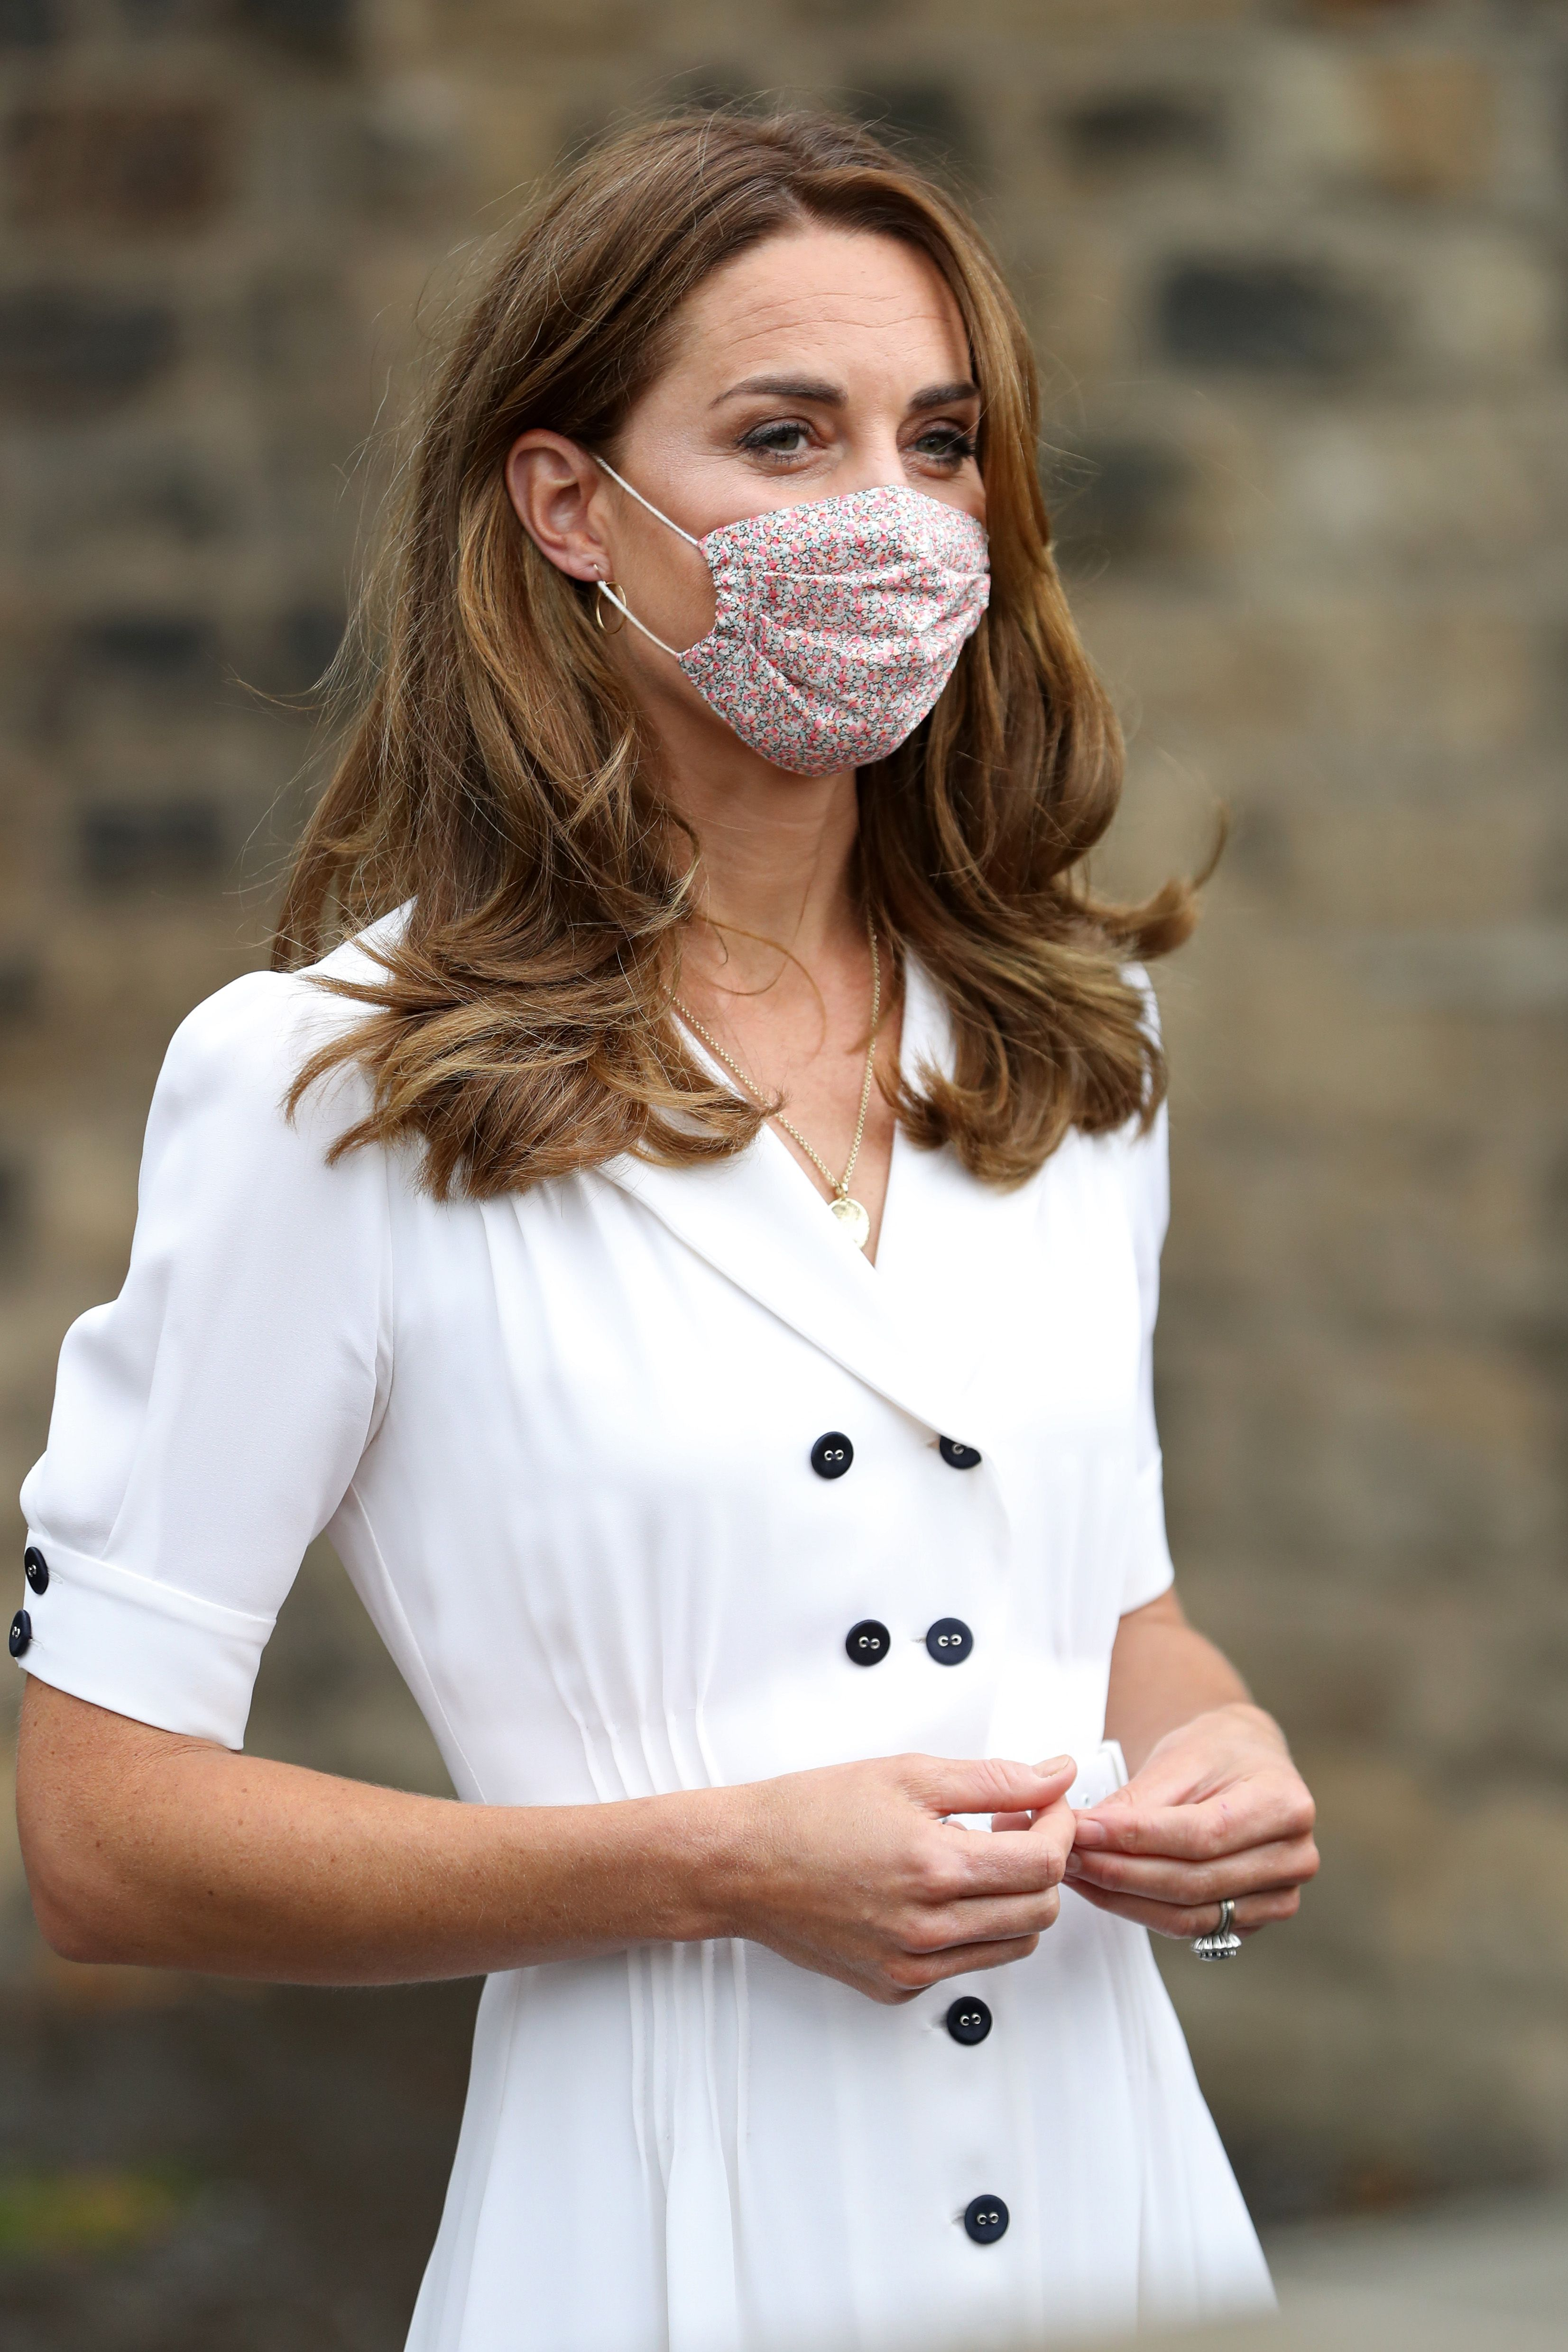 Kate Middleton Wore a Face Mask in Public for the First Time, and It Only Costs $20